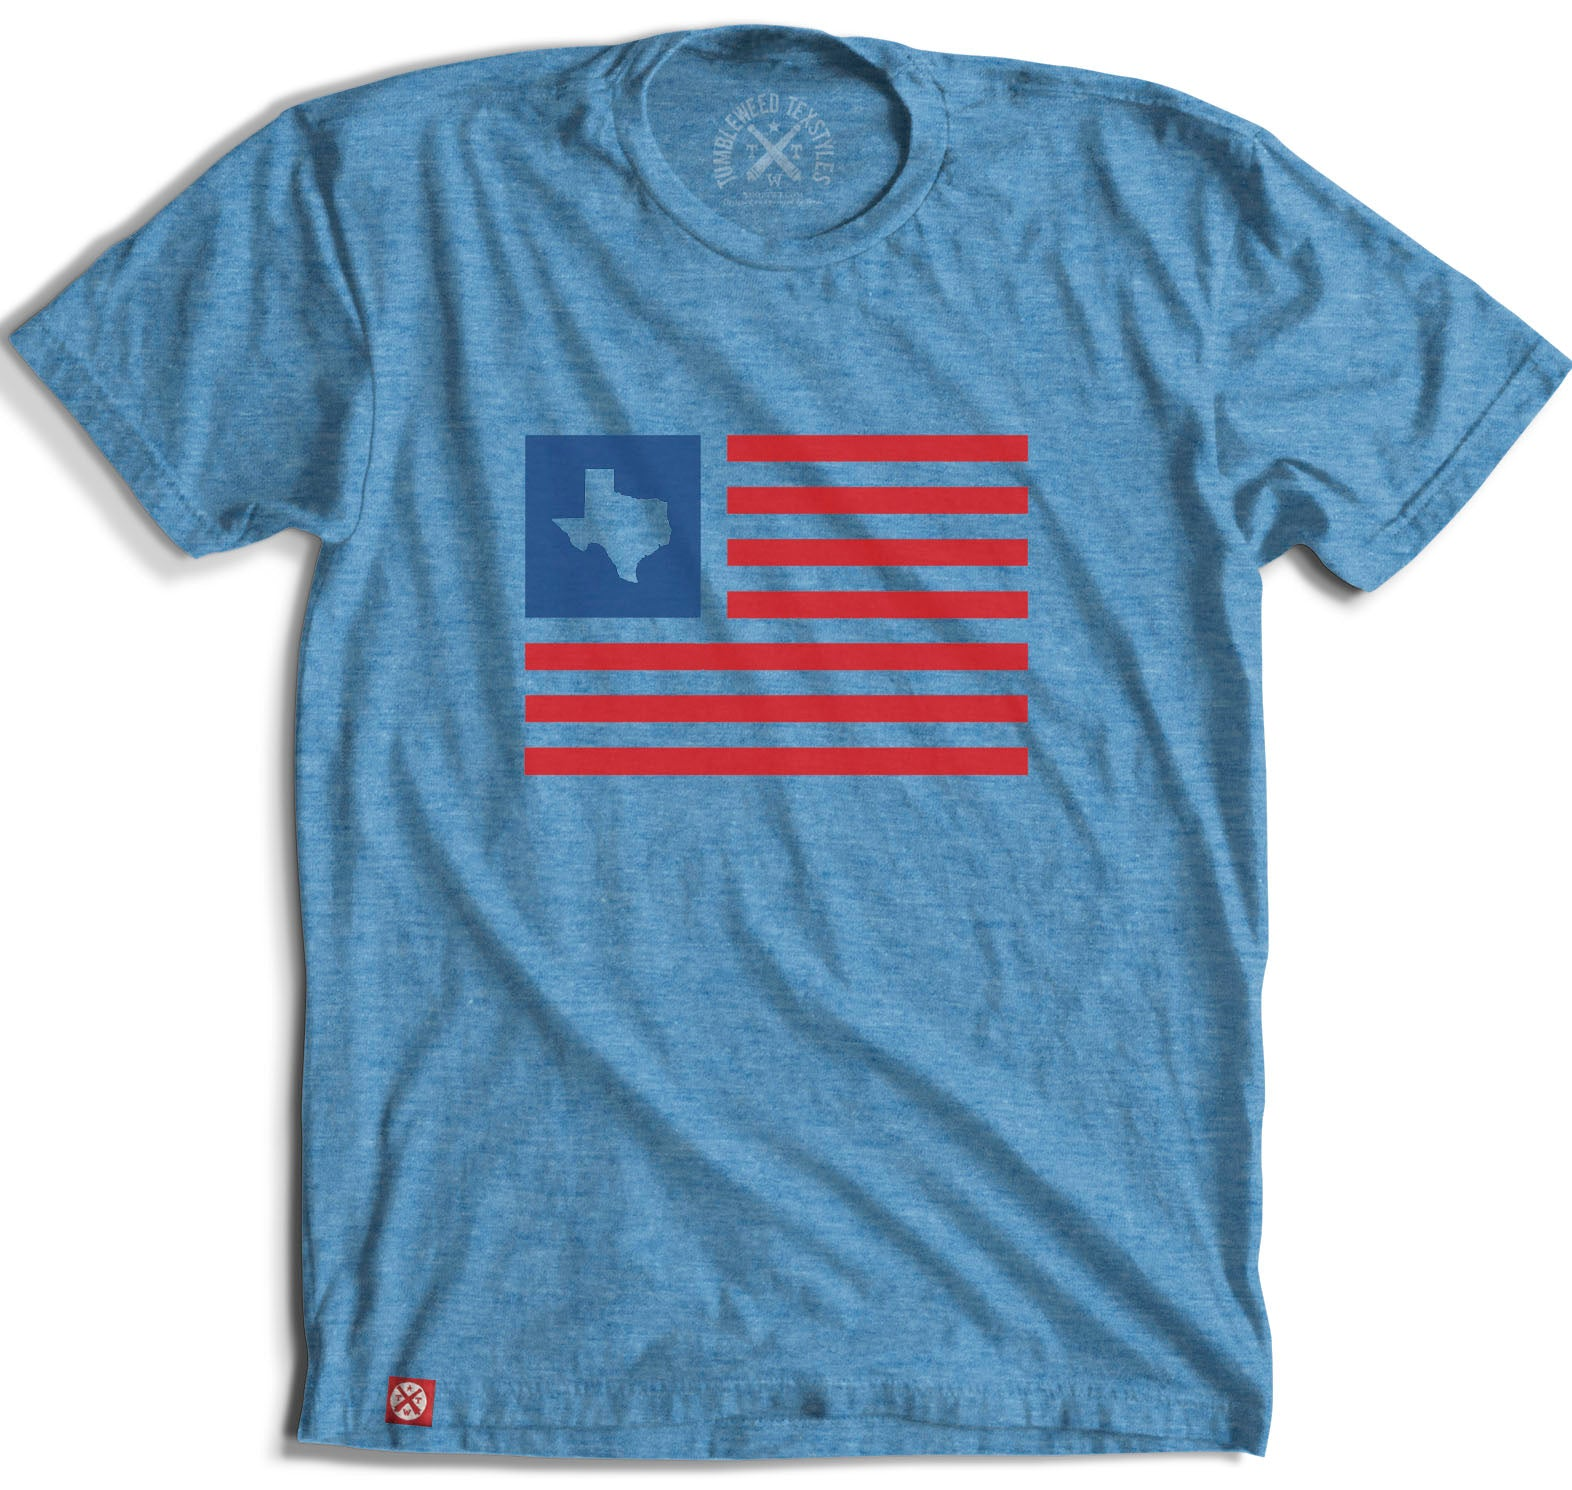 Patriotic Texas T-Shirt